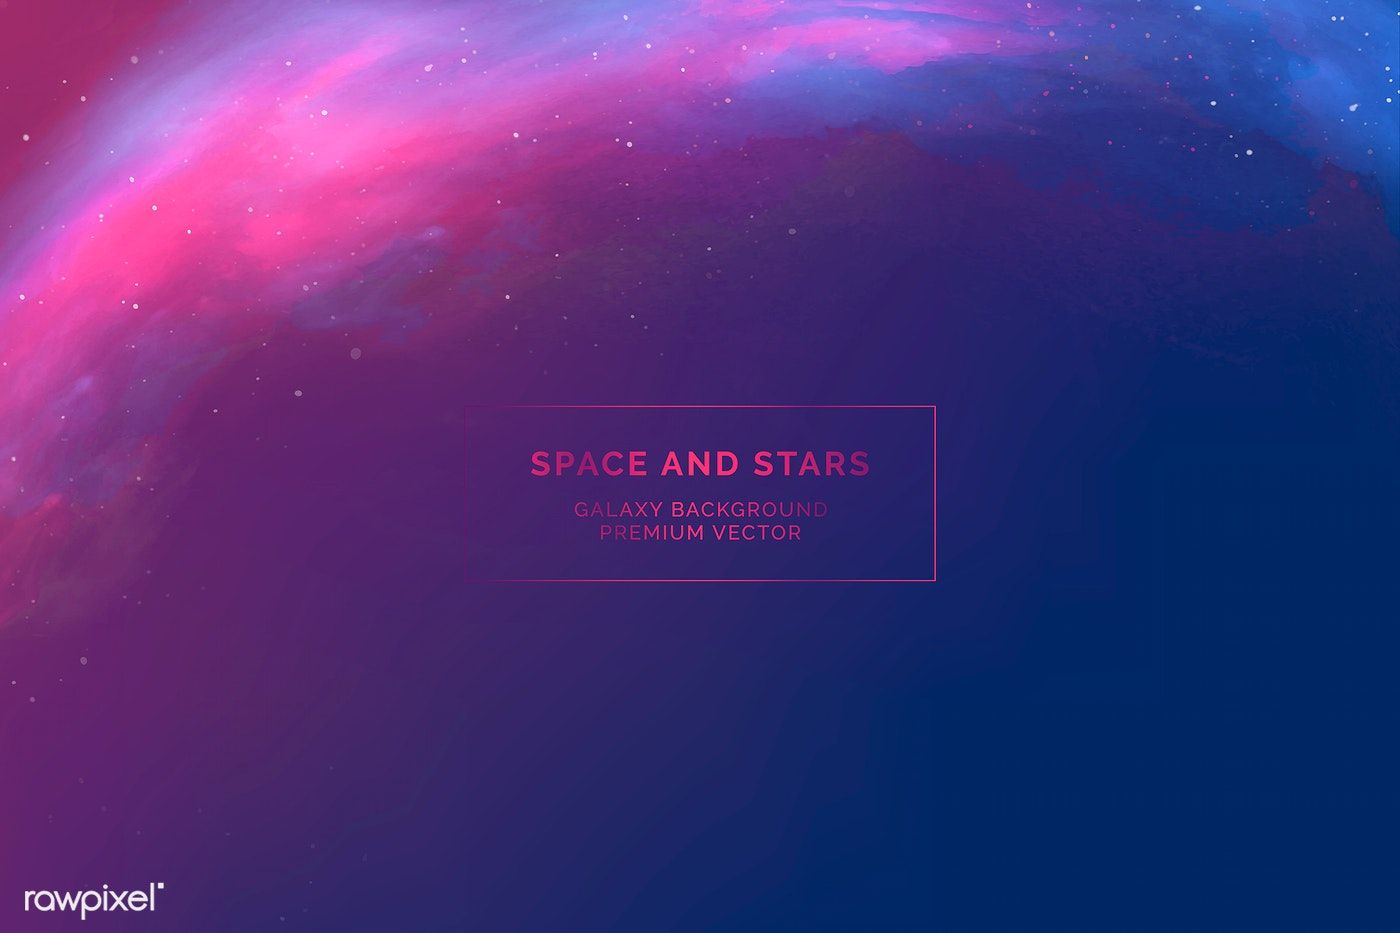 Colorful Abstract Nebula Space Background Vector Free Image By Rawpixel Com Kappy Kappy Nance Vector Free Stock Images Free Space Backgrounds